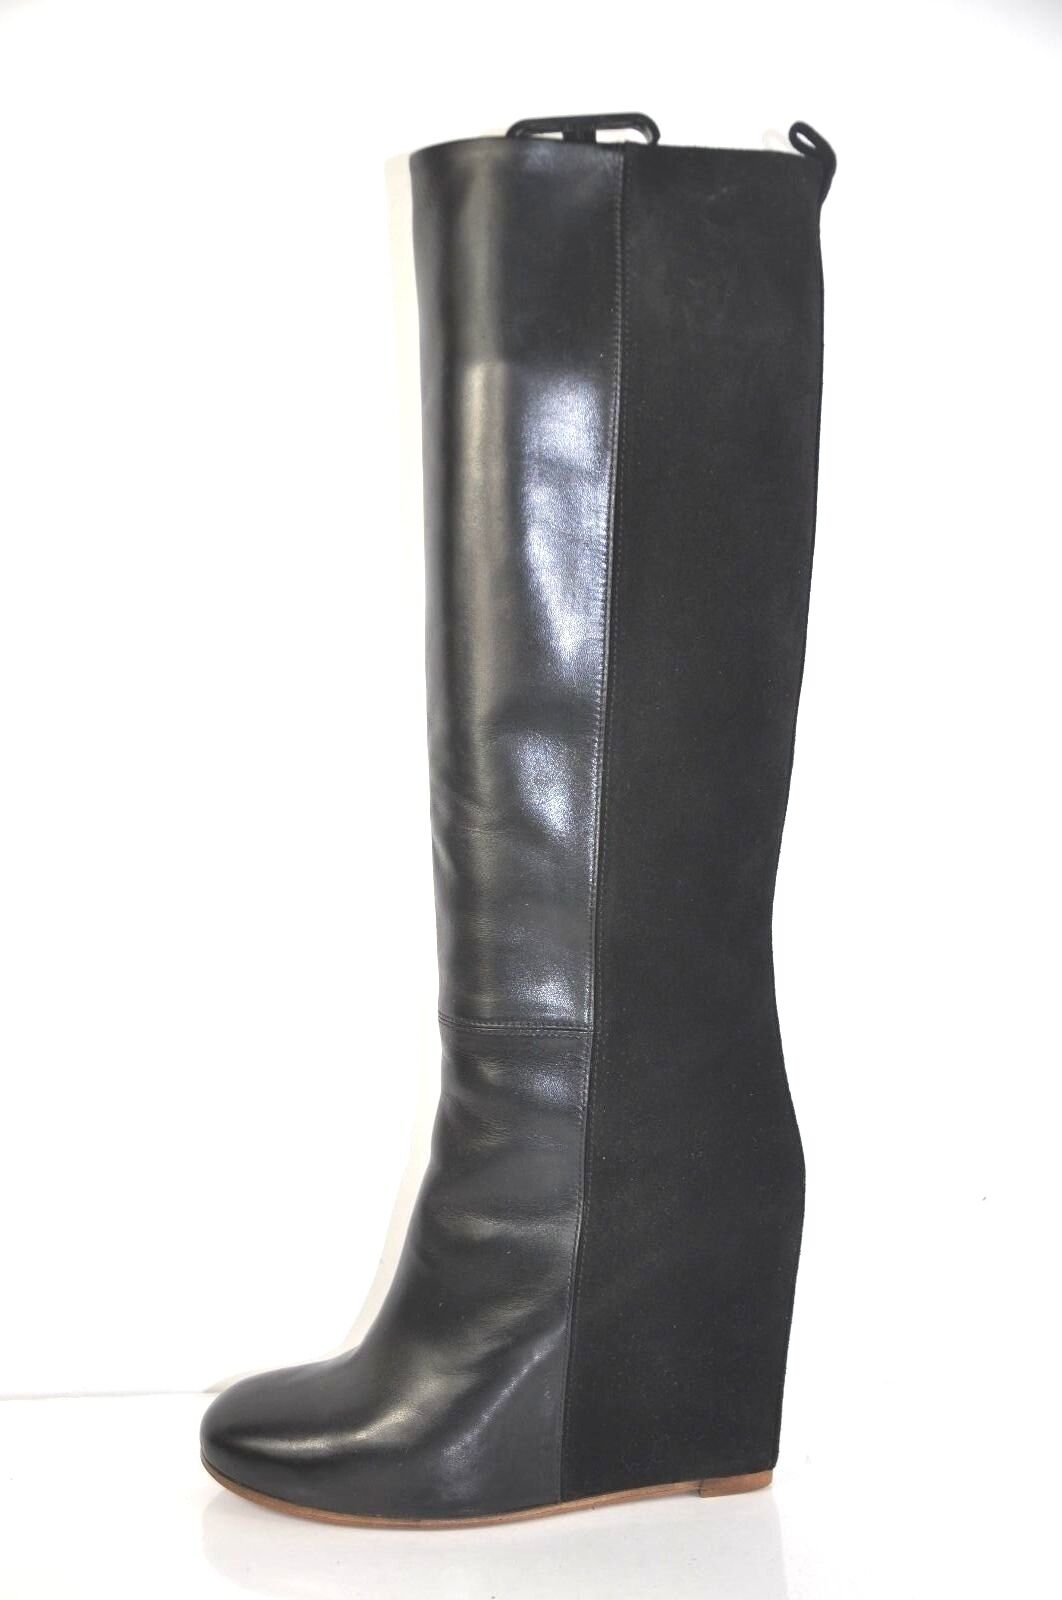 Celine Phoebe Philo Collection Black Leather and Suede Wedge Boots Size 39